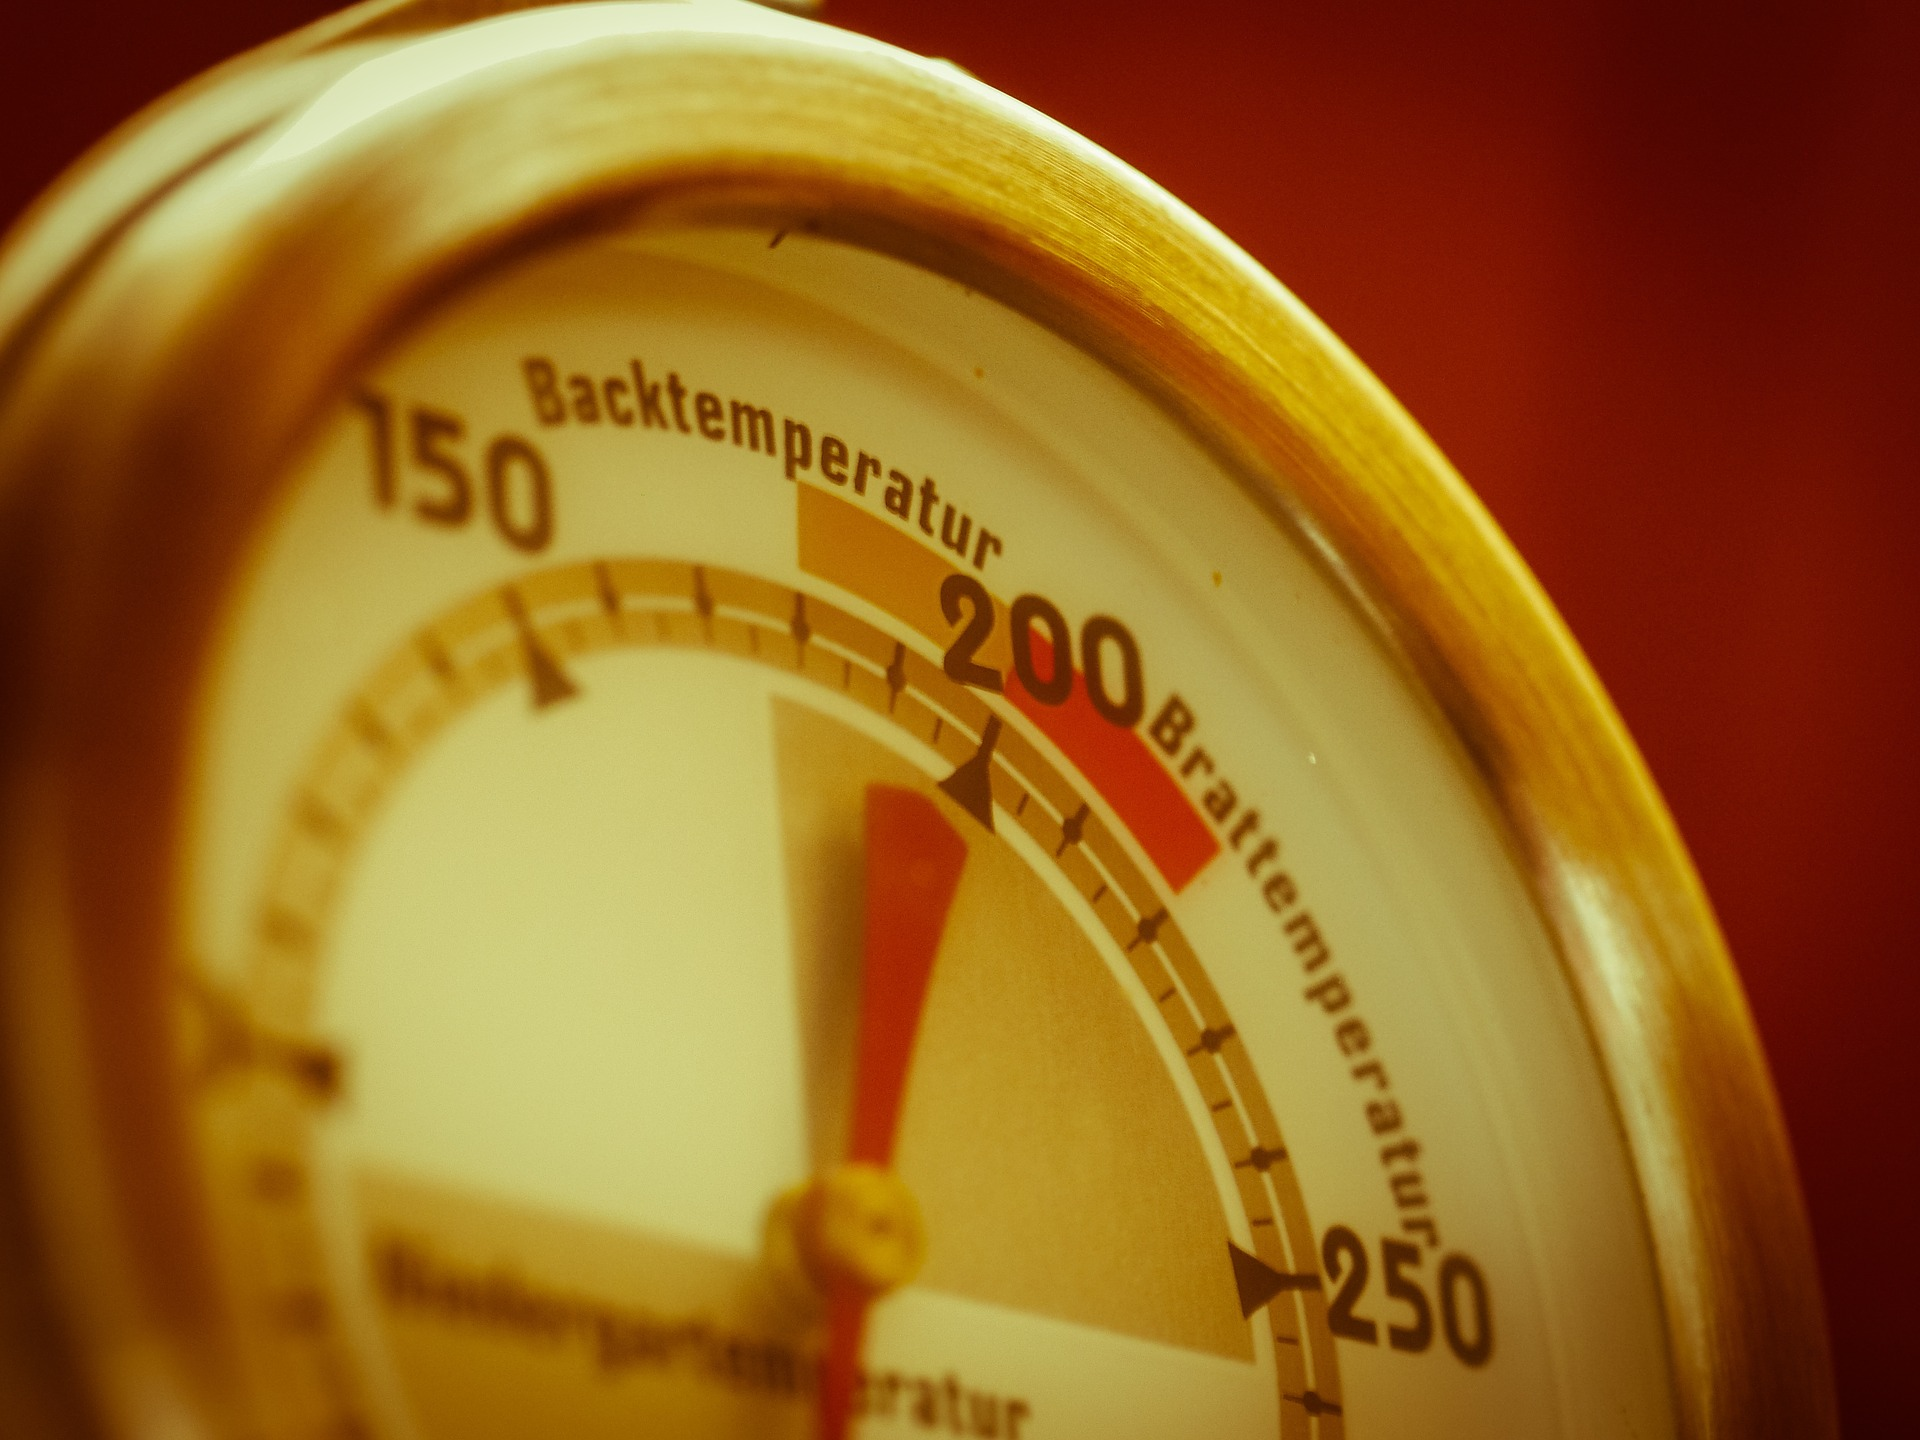 Ensure the accuracy of your thermometer. It's the only way to know if your delivery has maintained a safe temperature.